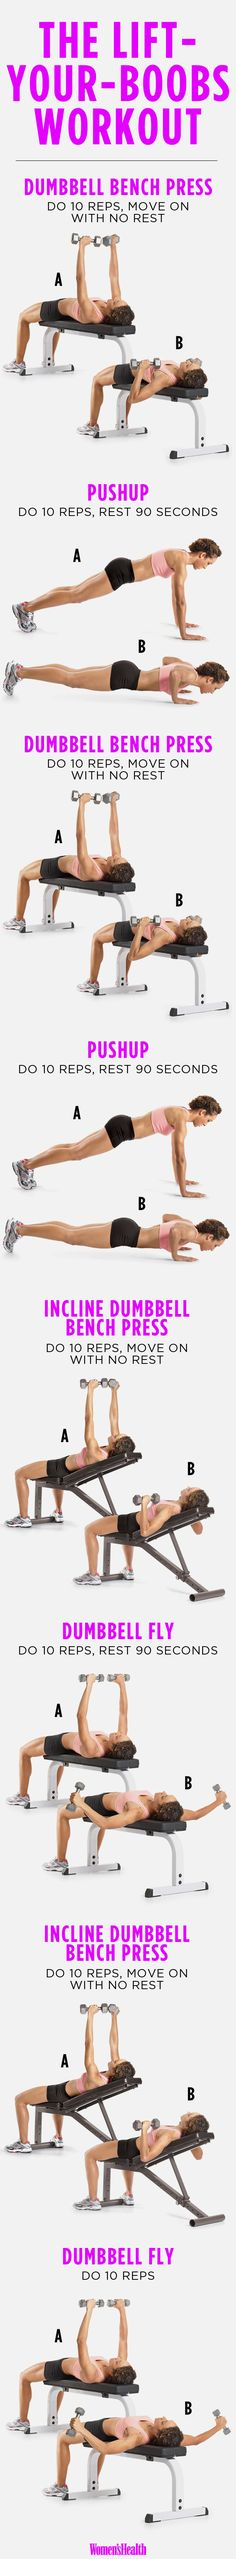 4 Exercises to Lift Your Boobs - might need this after #2 shows up next week!